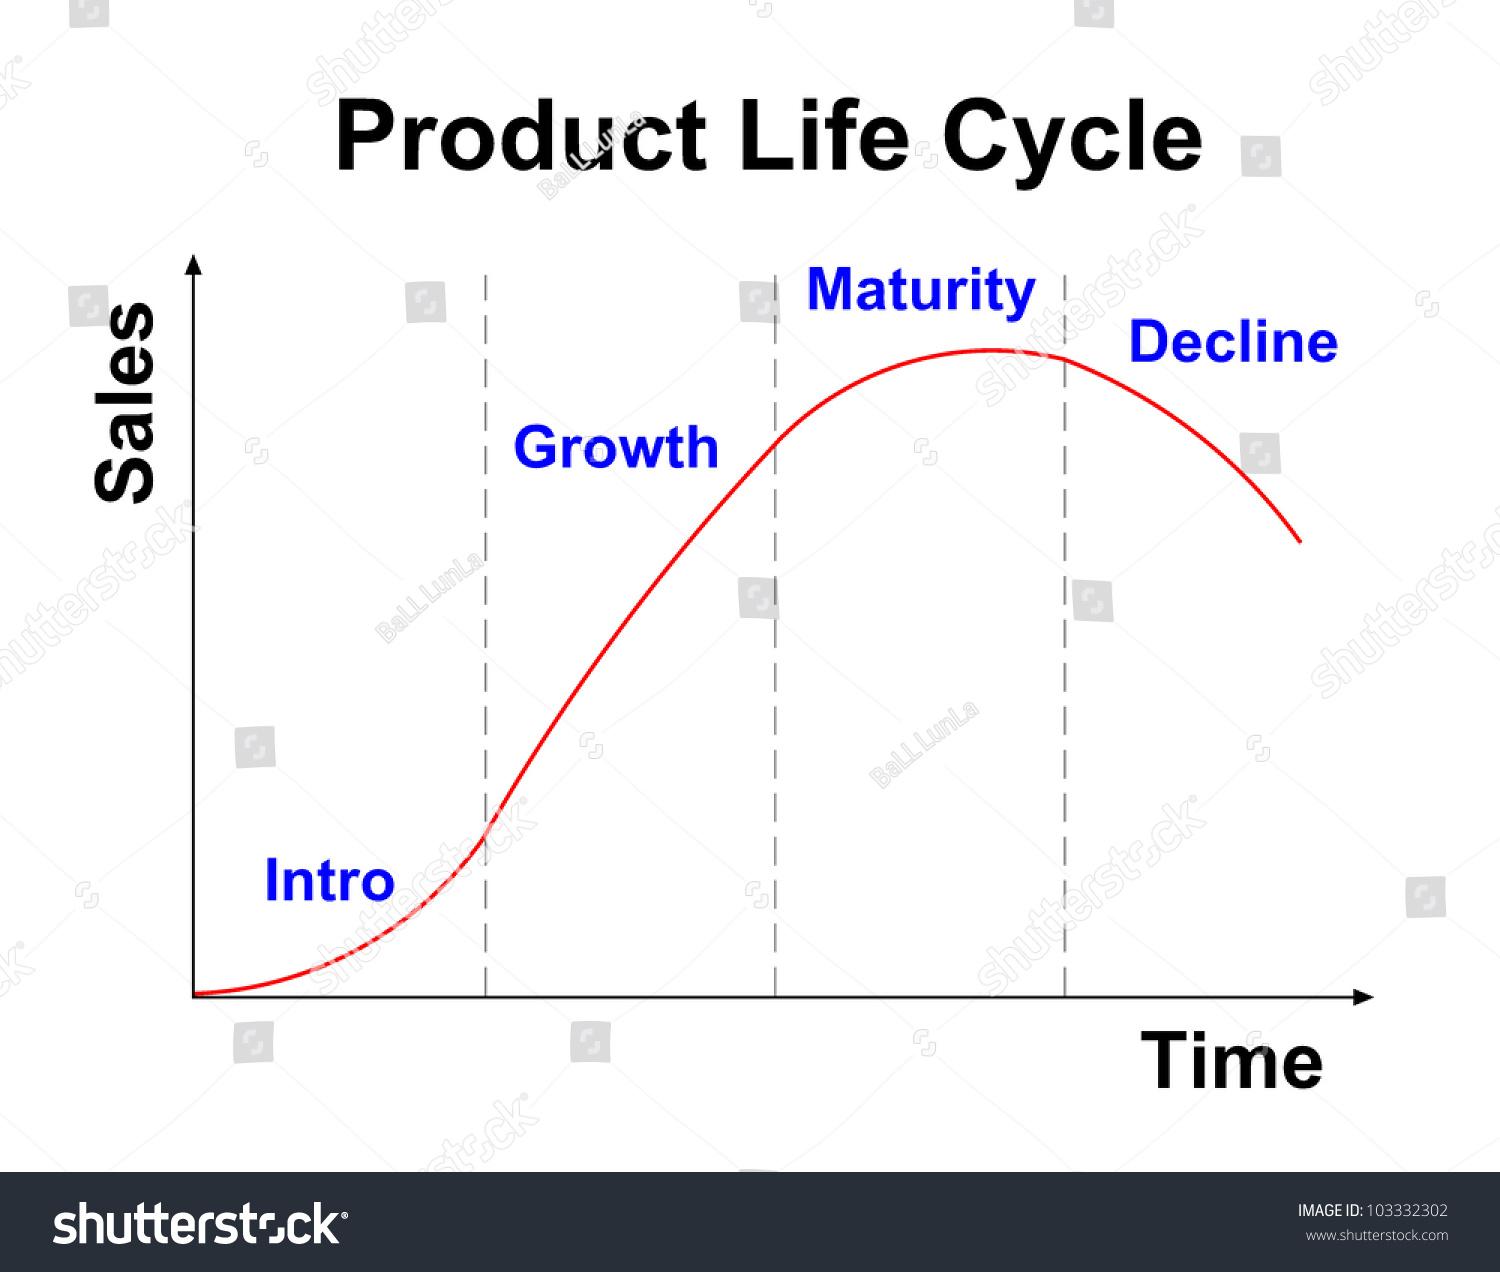 the product life cycle and product market expansion grid Hft 2500 marketing final study according to the ansoff product-market expansion grid, when evaluating growth strategies, management should first consider whether in the ___ of the product life cycle sales slow down and supplies start to exceed demand.